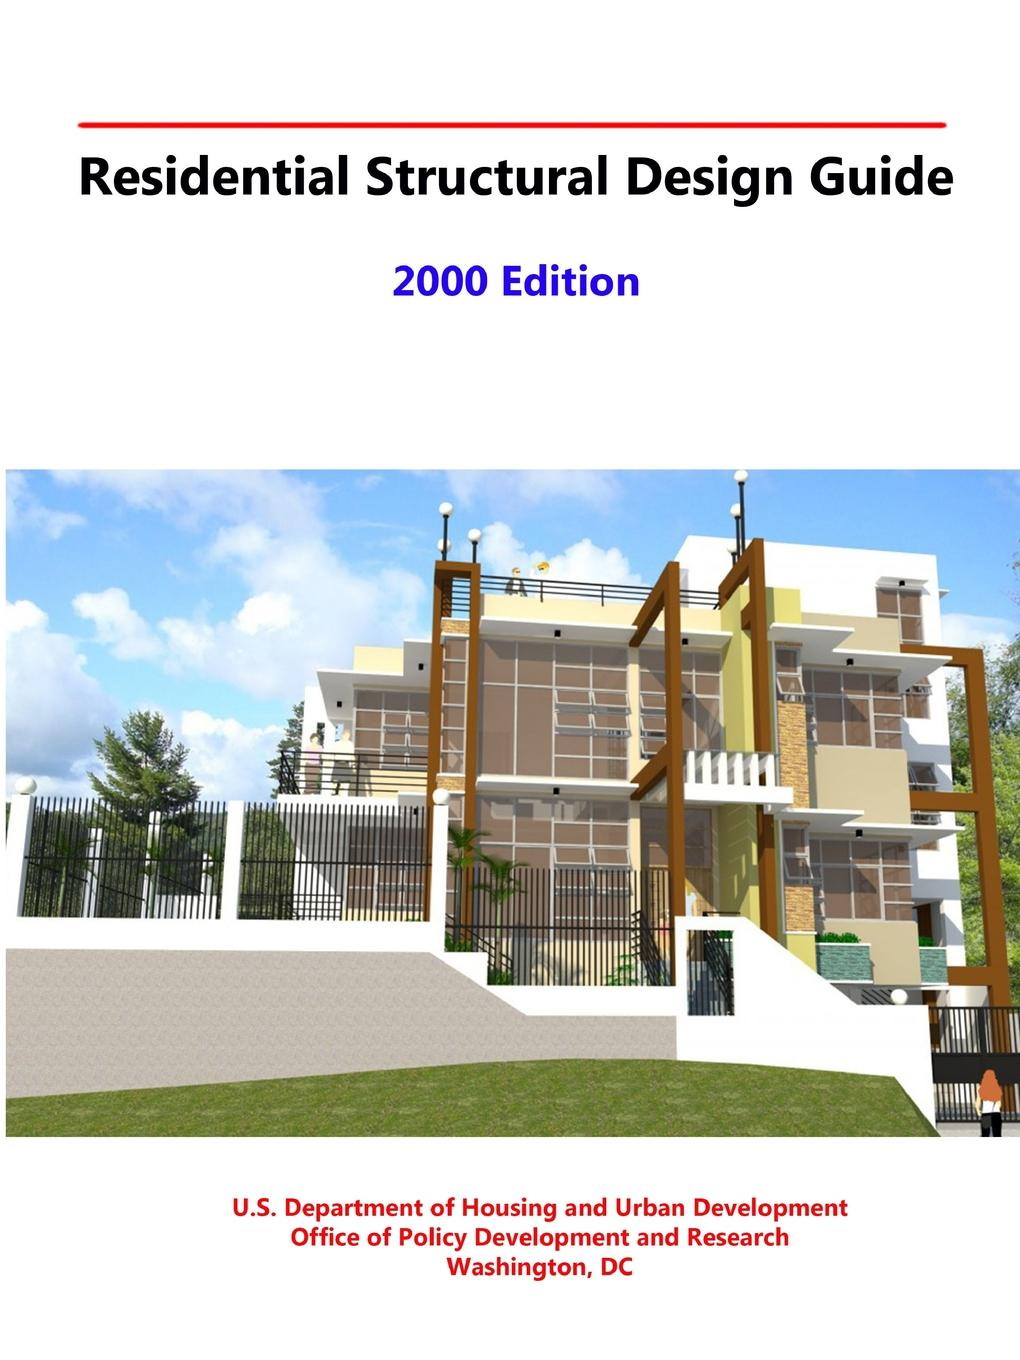 Department of Housing and Urban Developm Residential Structural Design Guide. 2000 Edition alessandro tibaldi federico pasquaré mariotto structural geology of active tectonic areas and volcanic regions